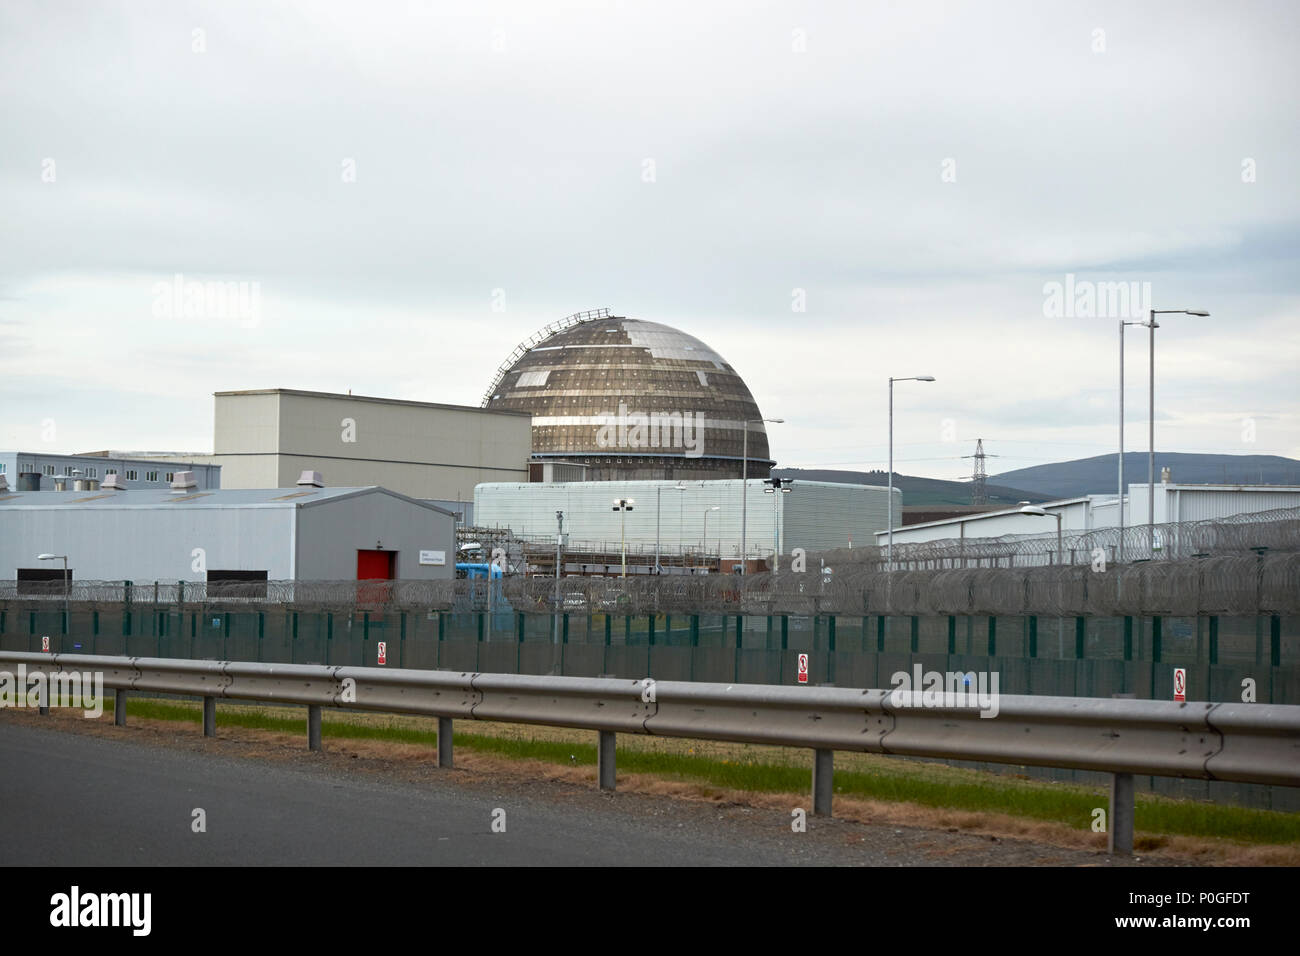 windscale gas cooled reactor at Sellafield nuclear fuel reprocessing and nuclear decommissioning site in Cumbria England UK - Stock Image